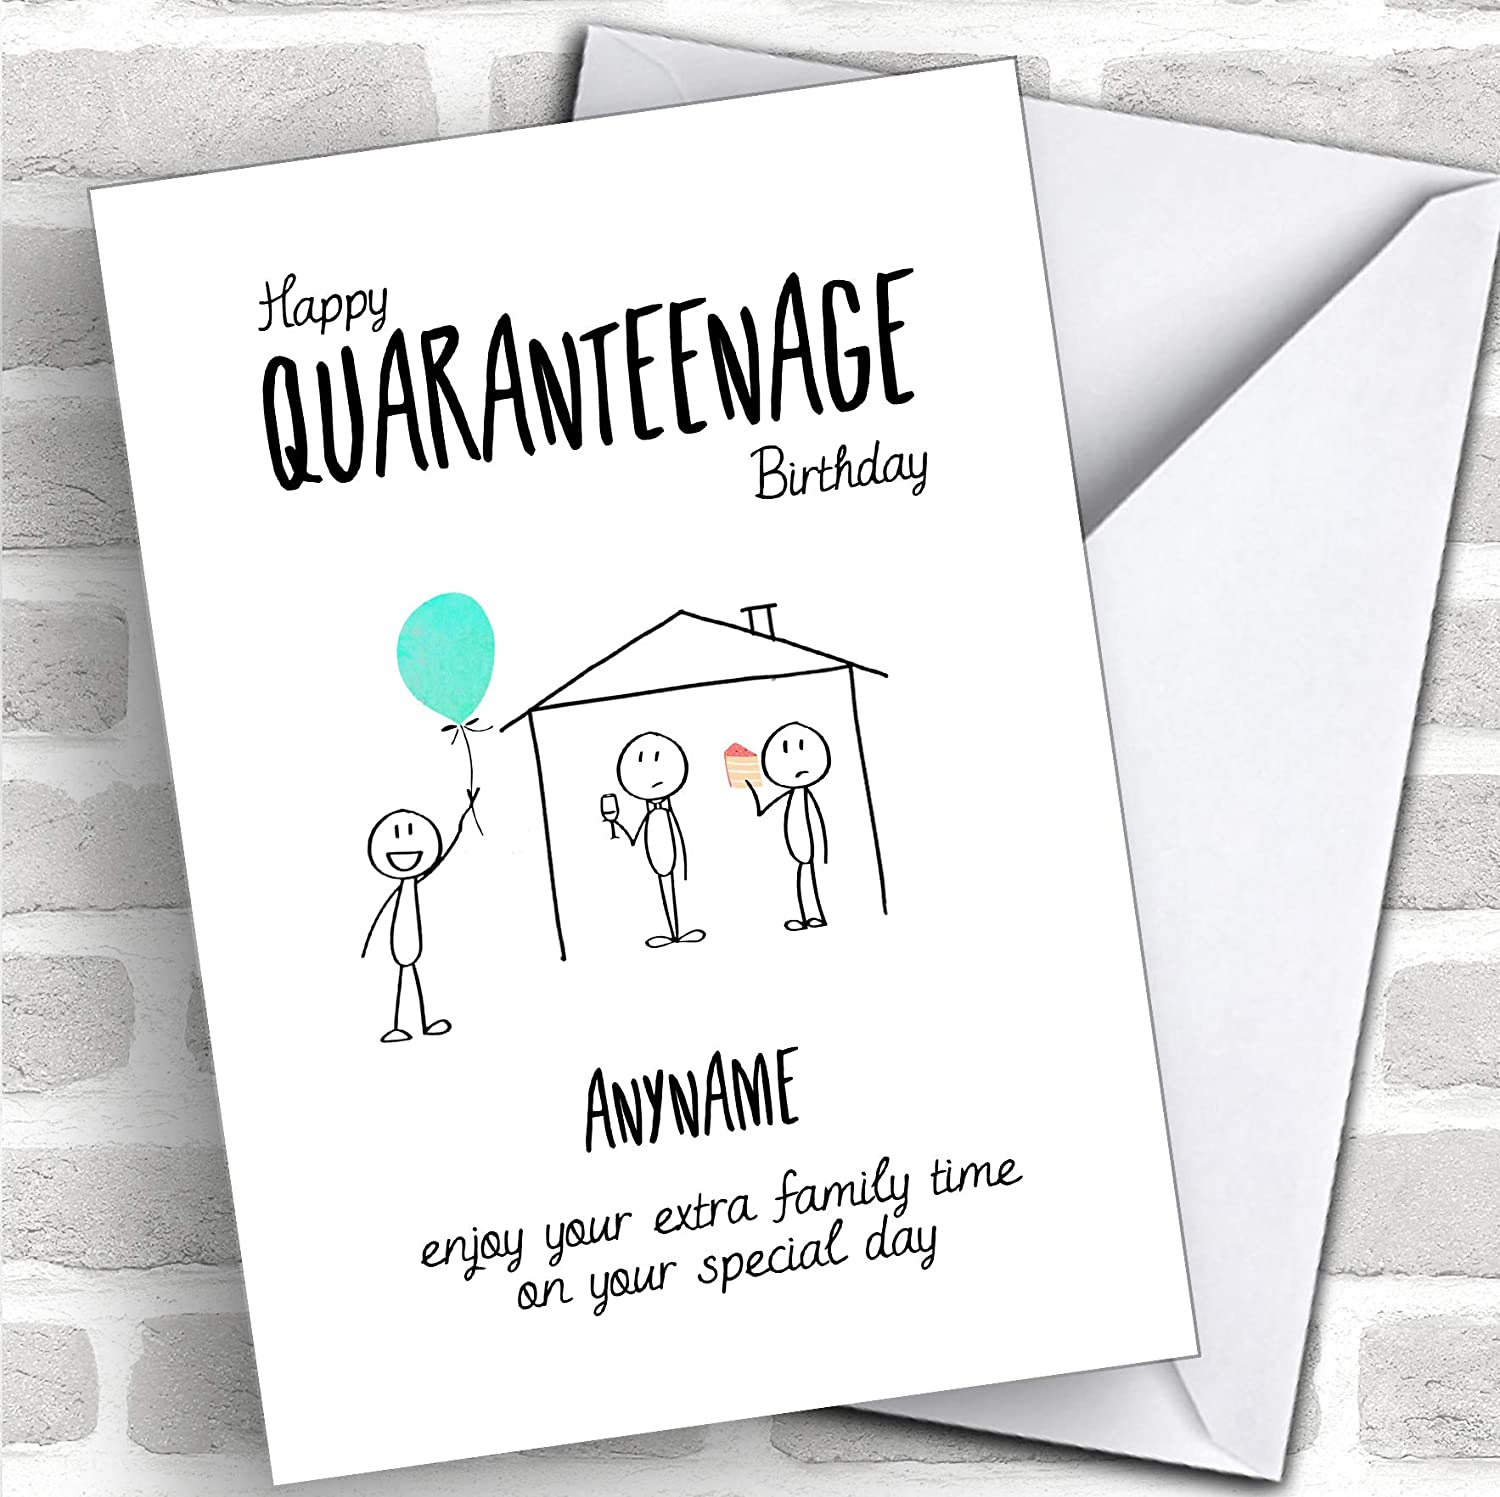 Greeting Cards Alcohol Quarantine Card Social Distancing Cards Funny Birthday Card For Him Her Friend Office Products